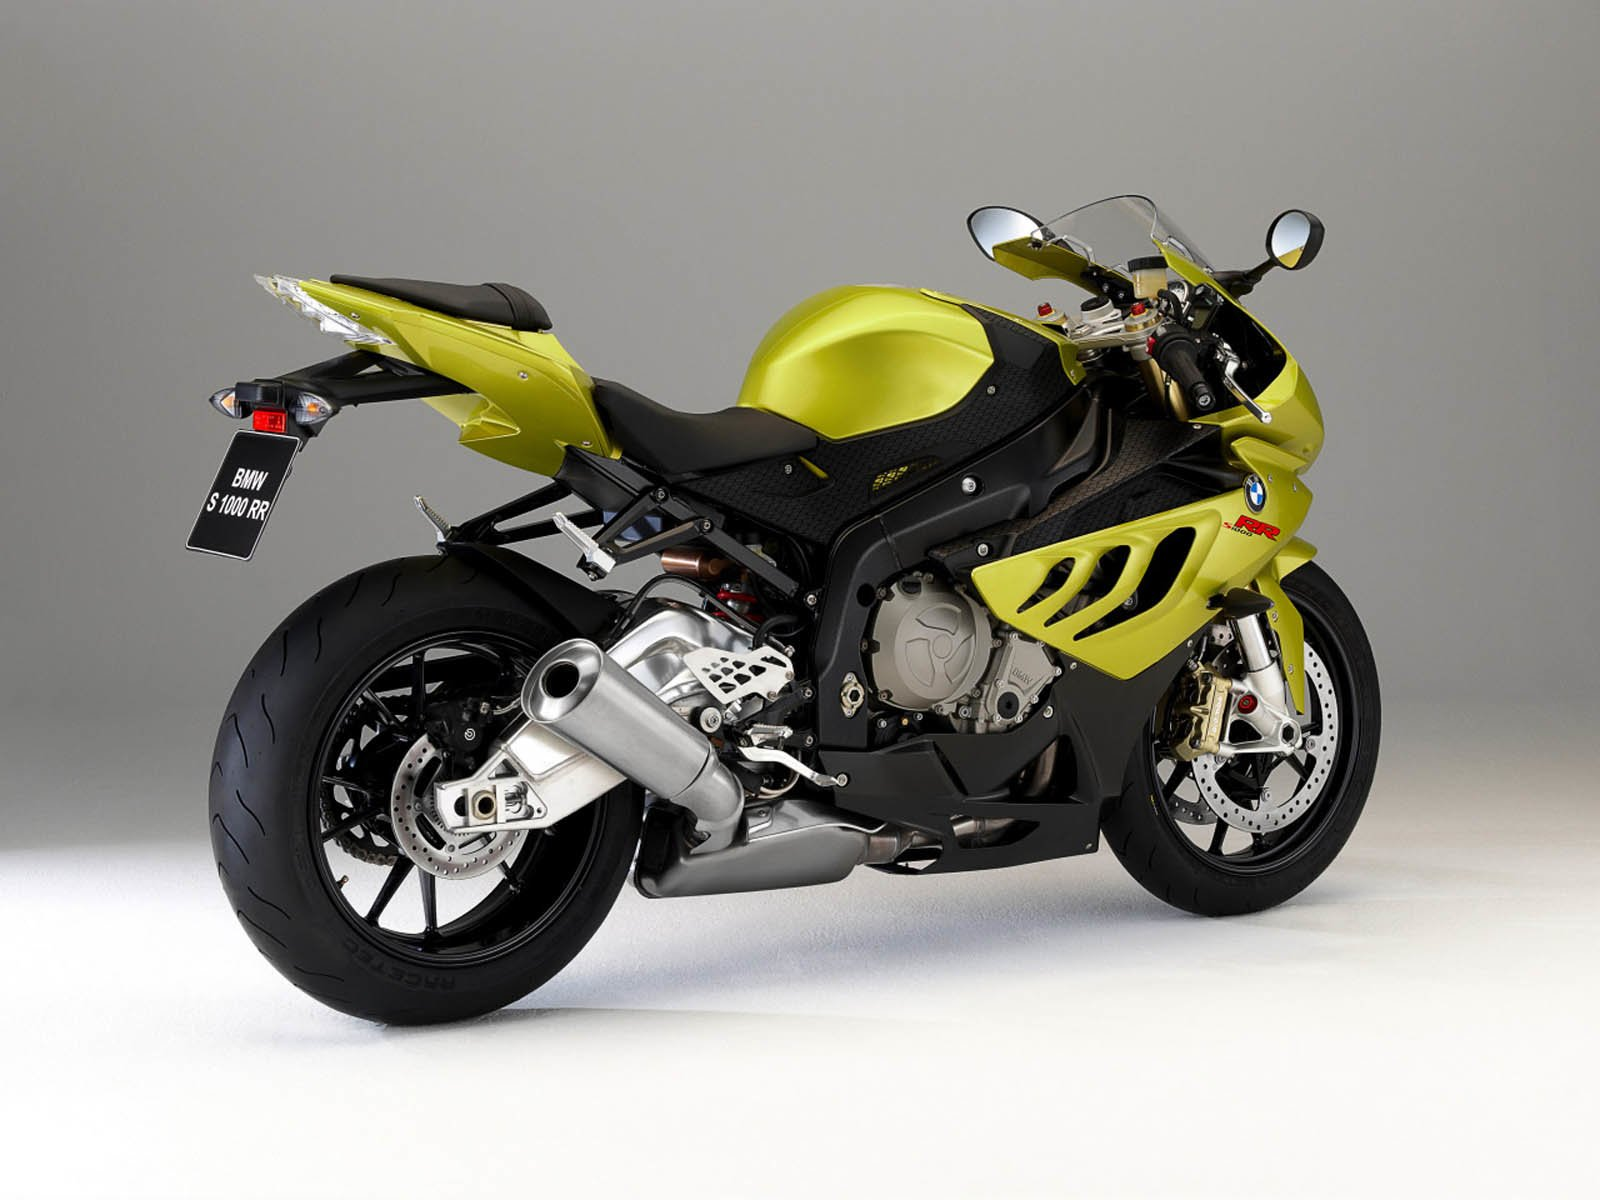 Latest Wallpapers Bmw S 1000 Rr Bike Wallpapers Free Download